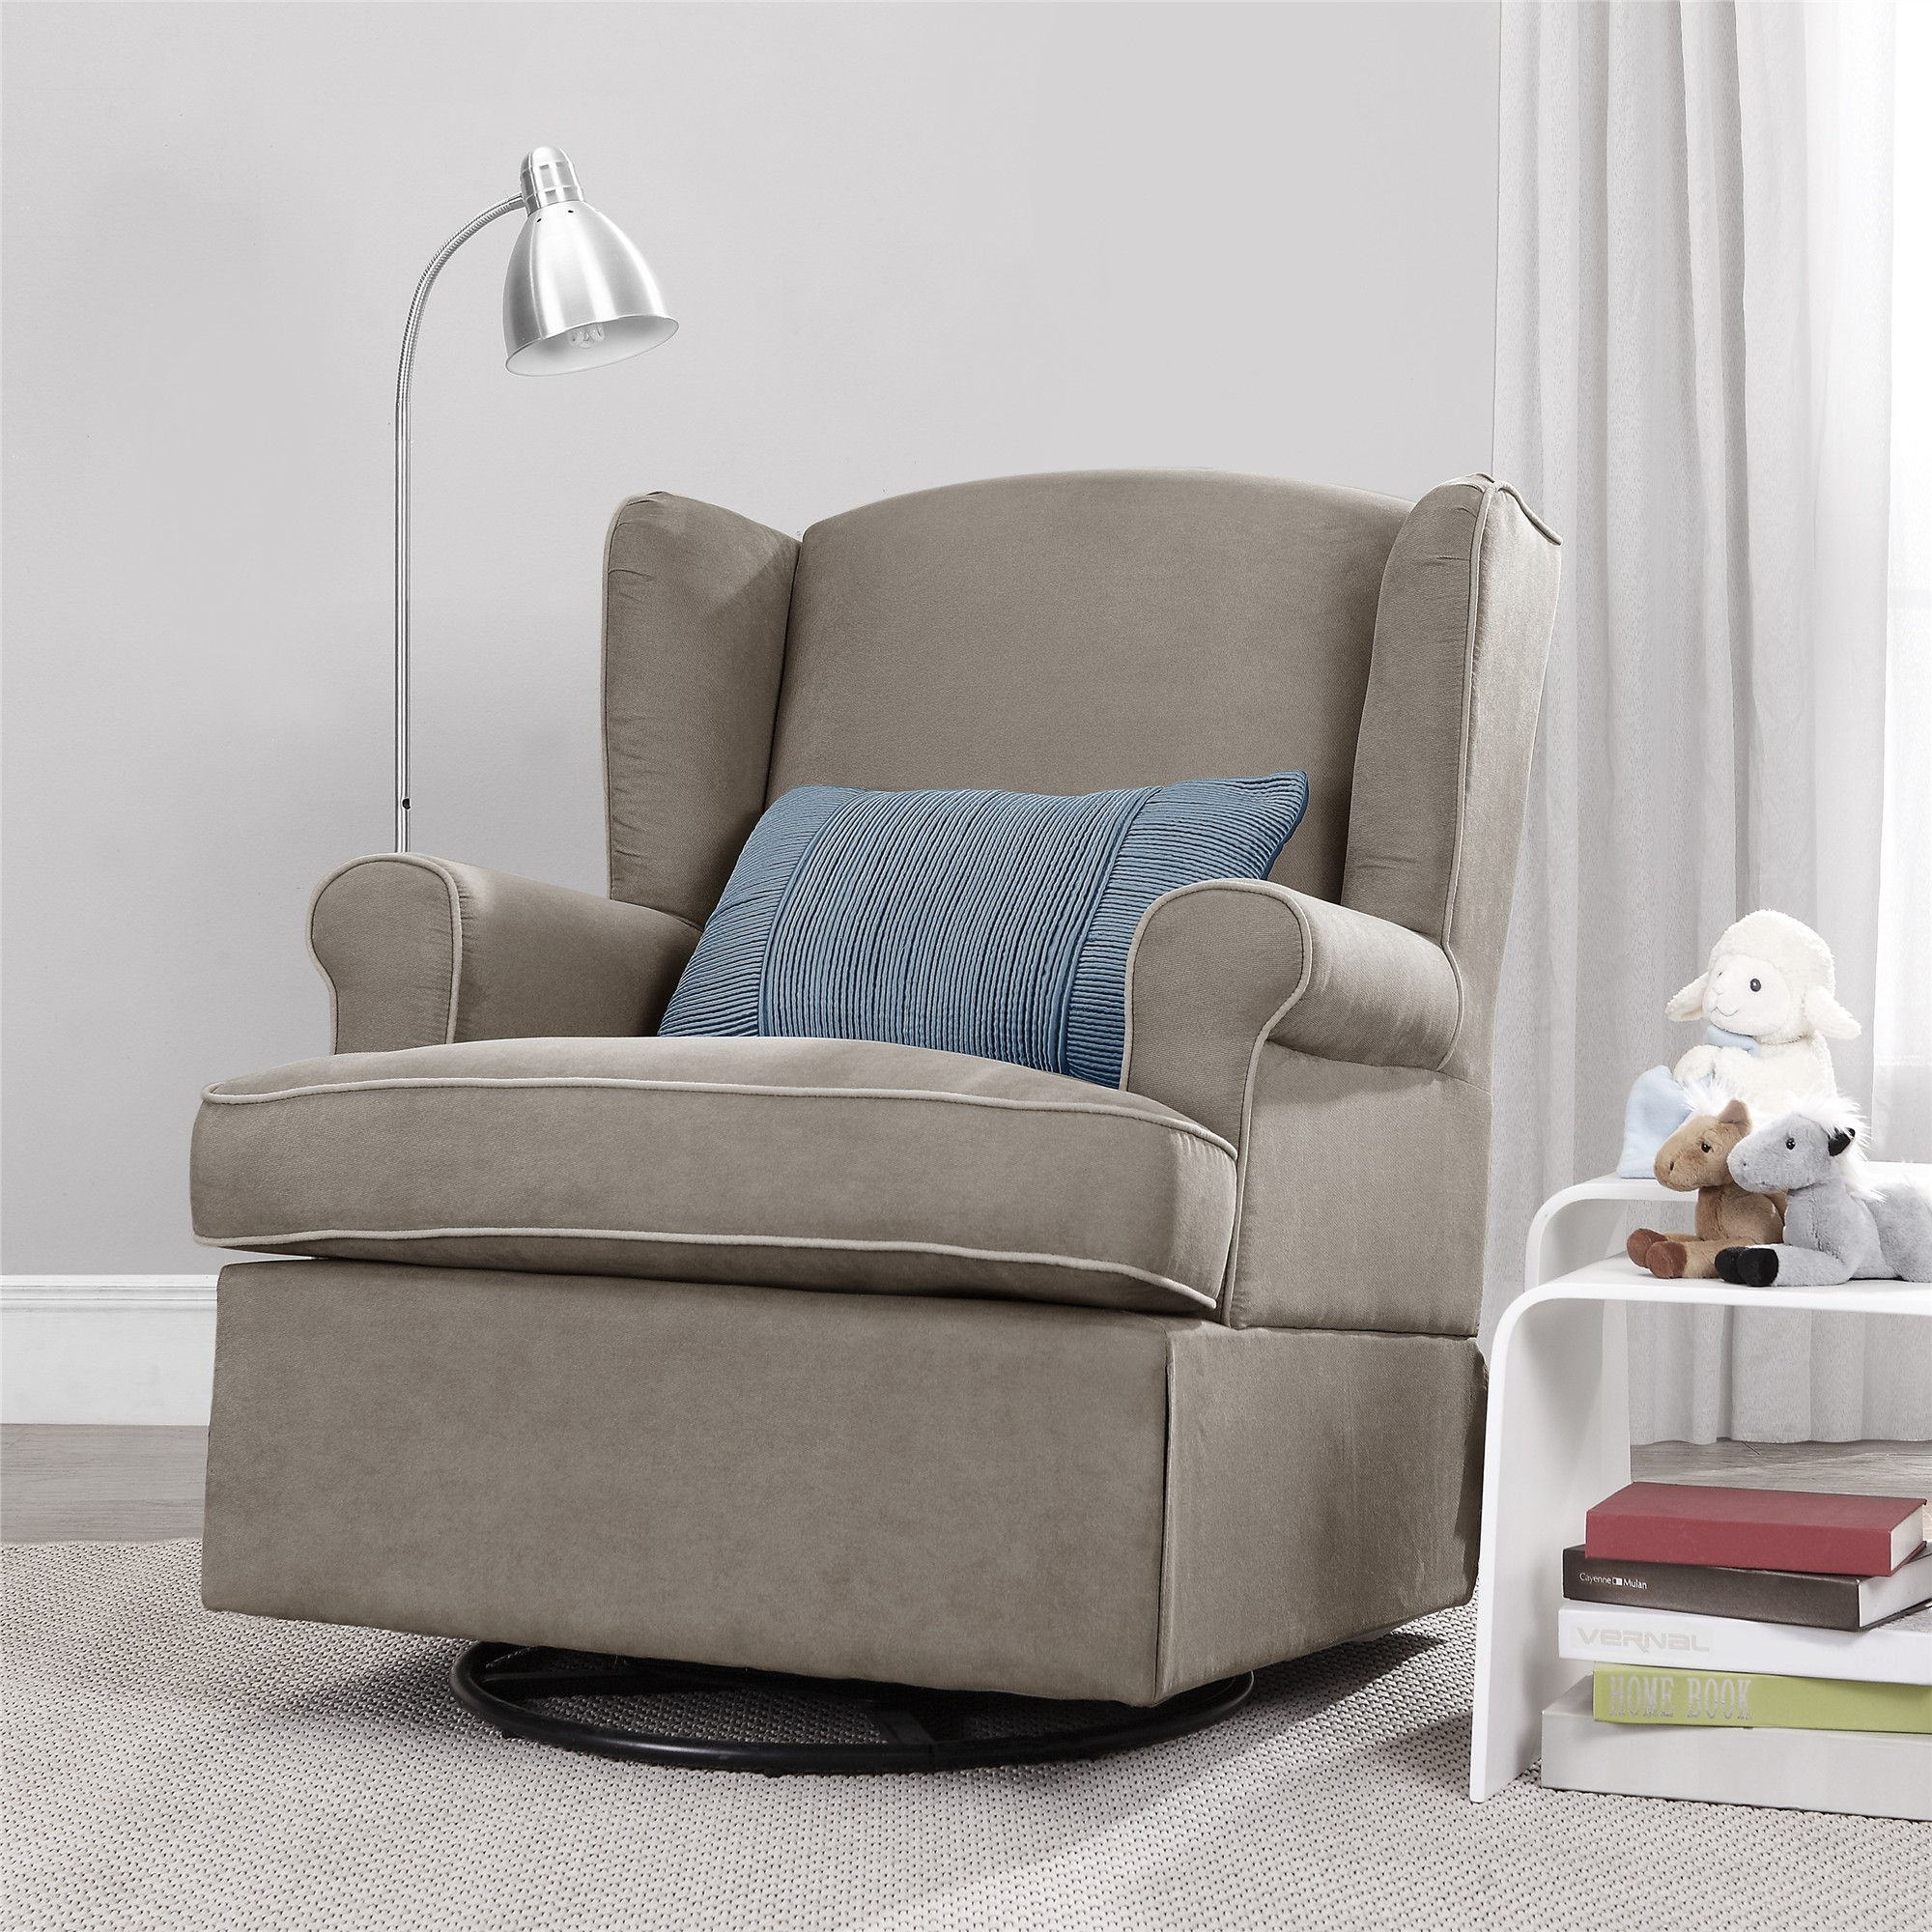 Astonishing Details About Baby Relax Furnishings Colby Dark Taupe Swivel Glider Chair Squirreltailoven Fun Painted Chair Ideas Images Squirreltailovenorg